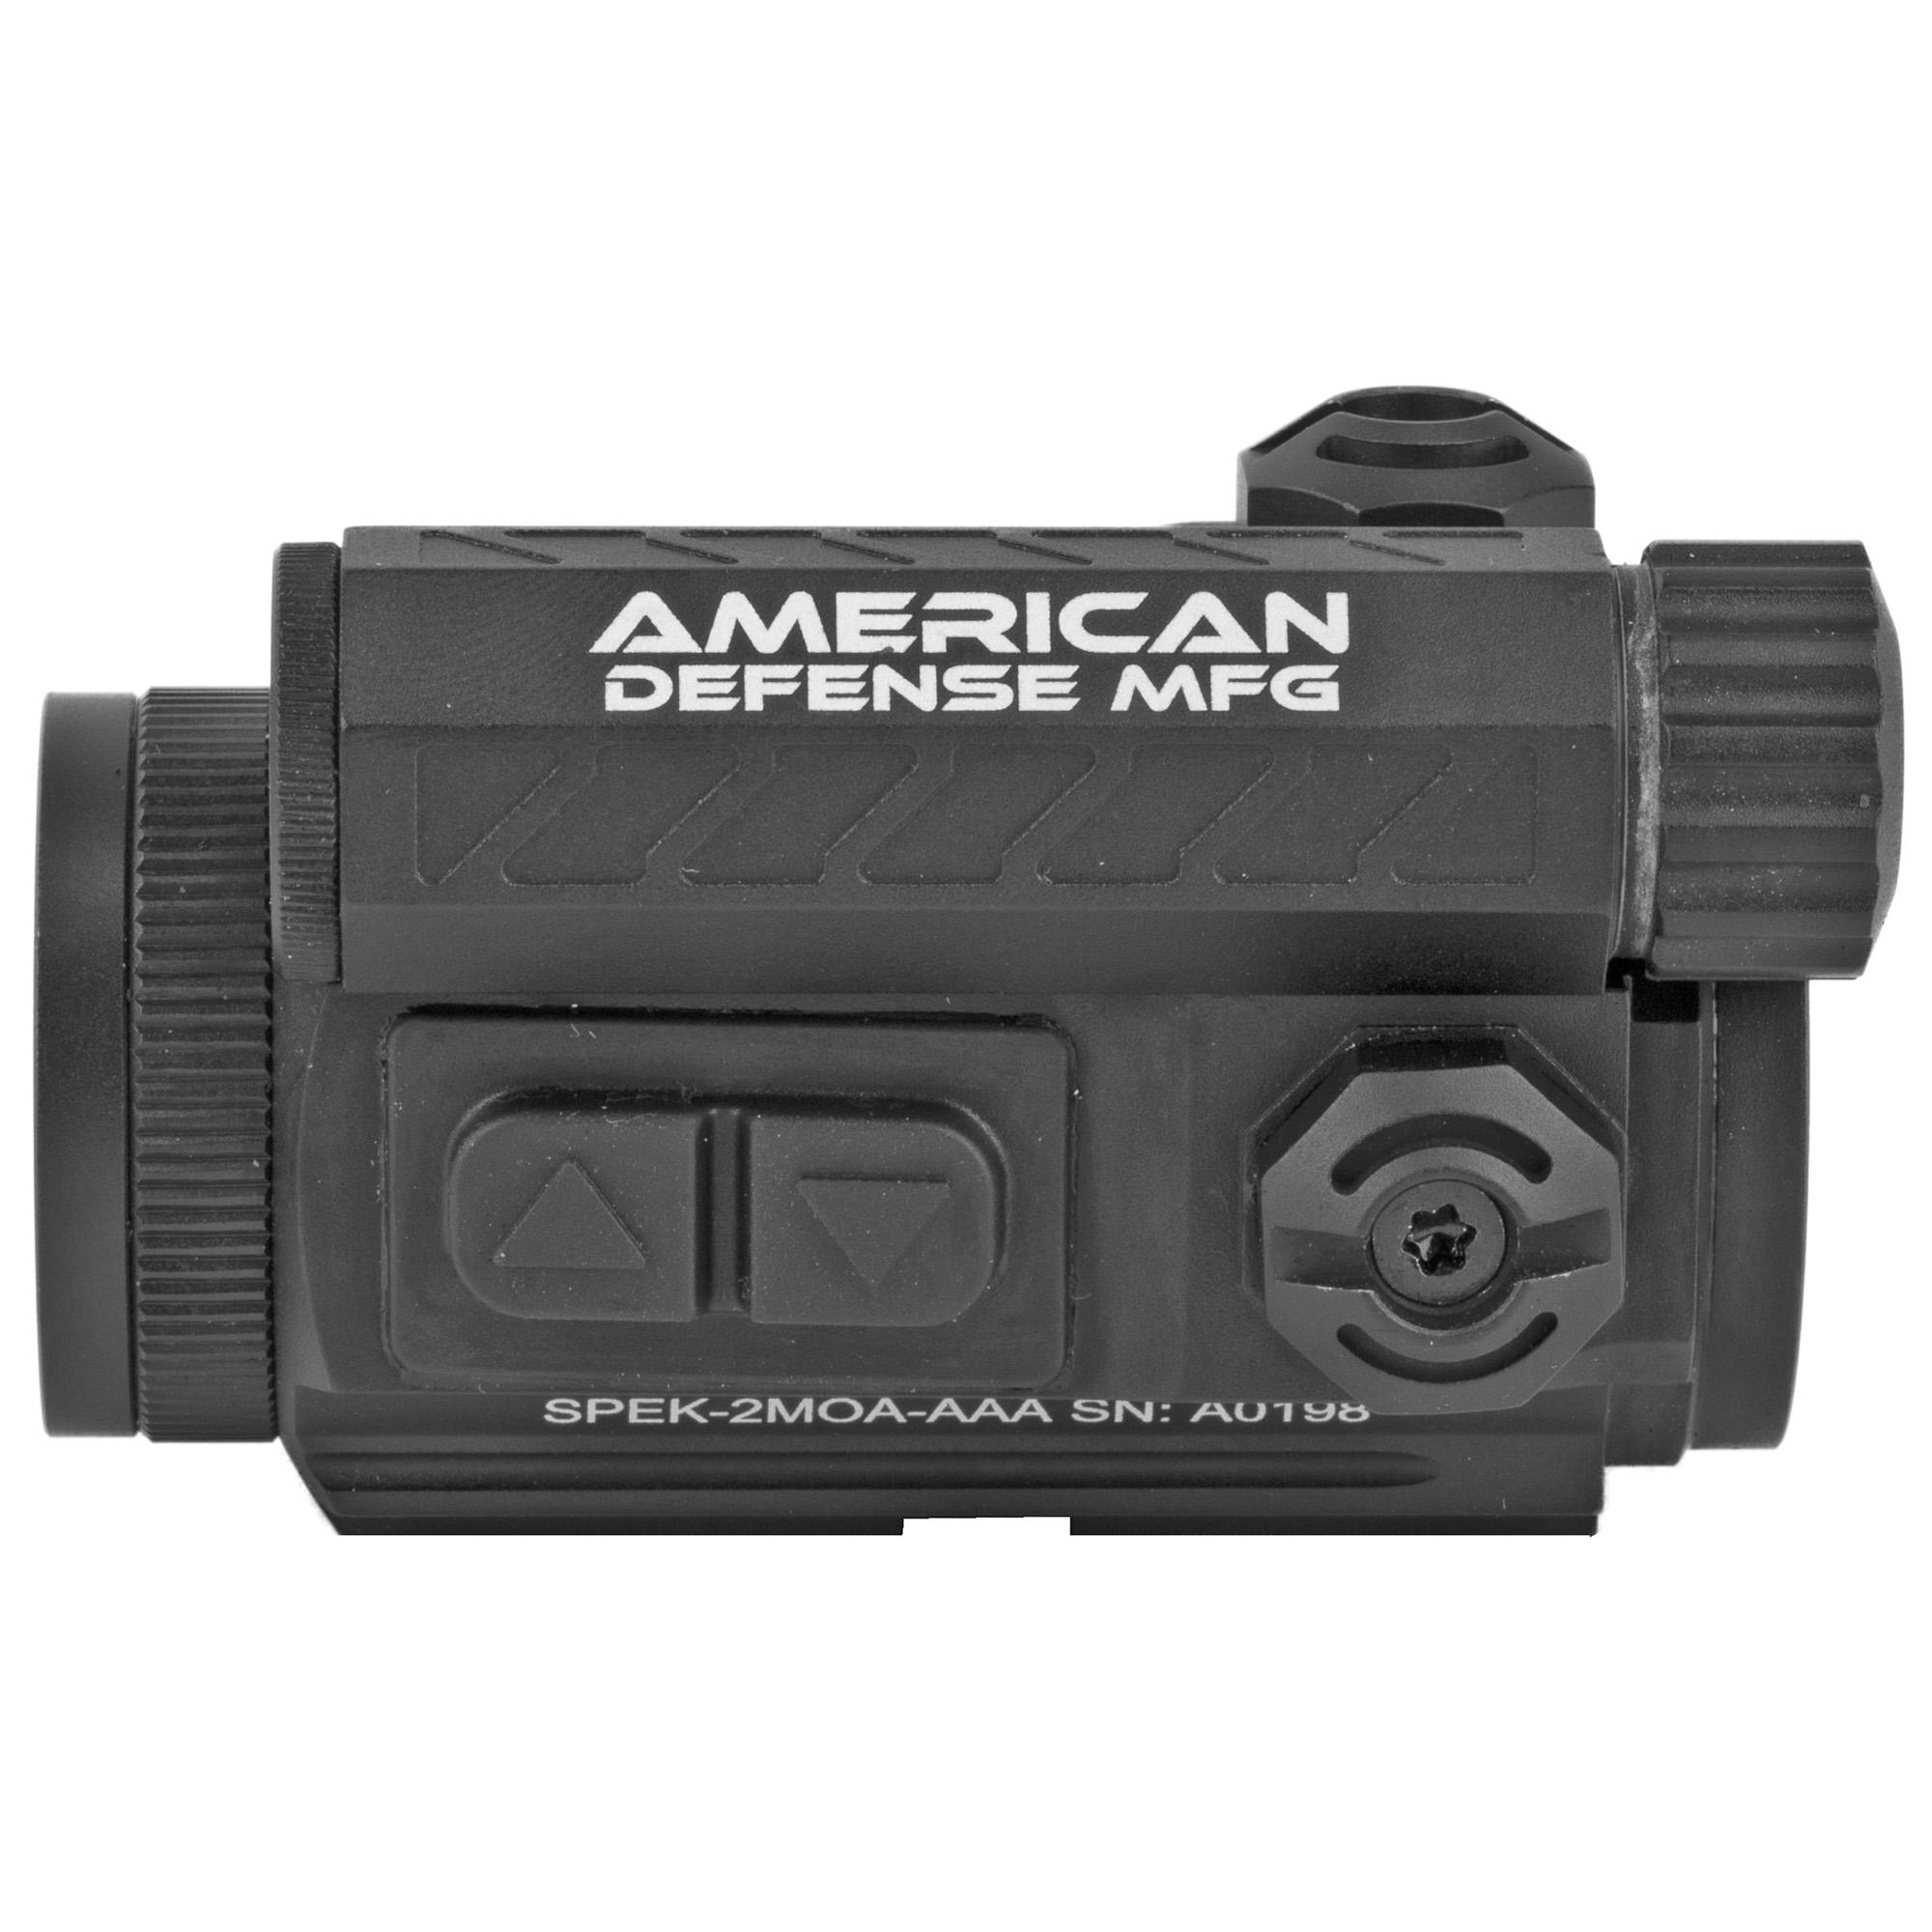 American Defense Mfg. Spek Red Dot Co-witness 2moa RD-T1-CO Photo 3